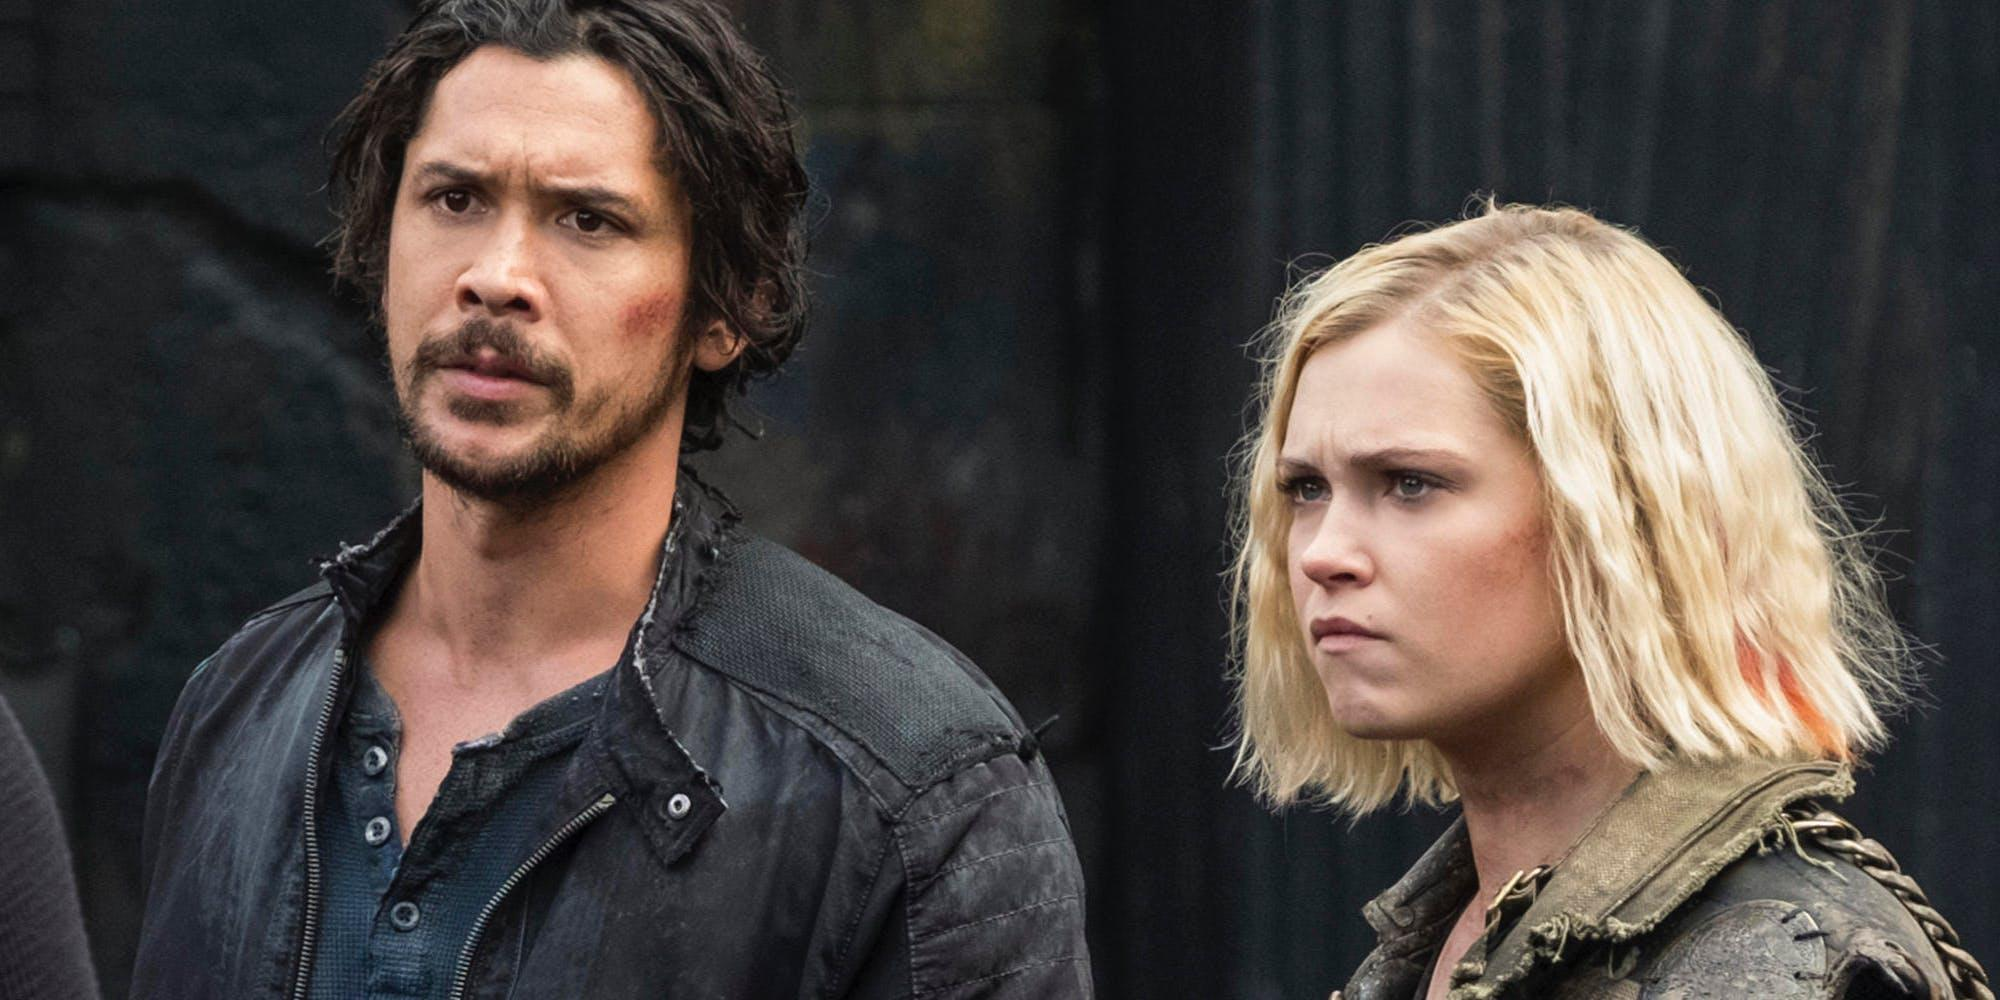 bob-morley-and-eliza-taylor-in-the-100-season-6-the-cw-1565115083348.jpg